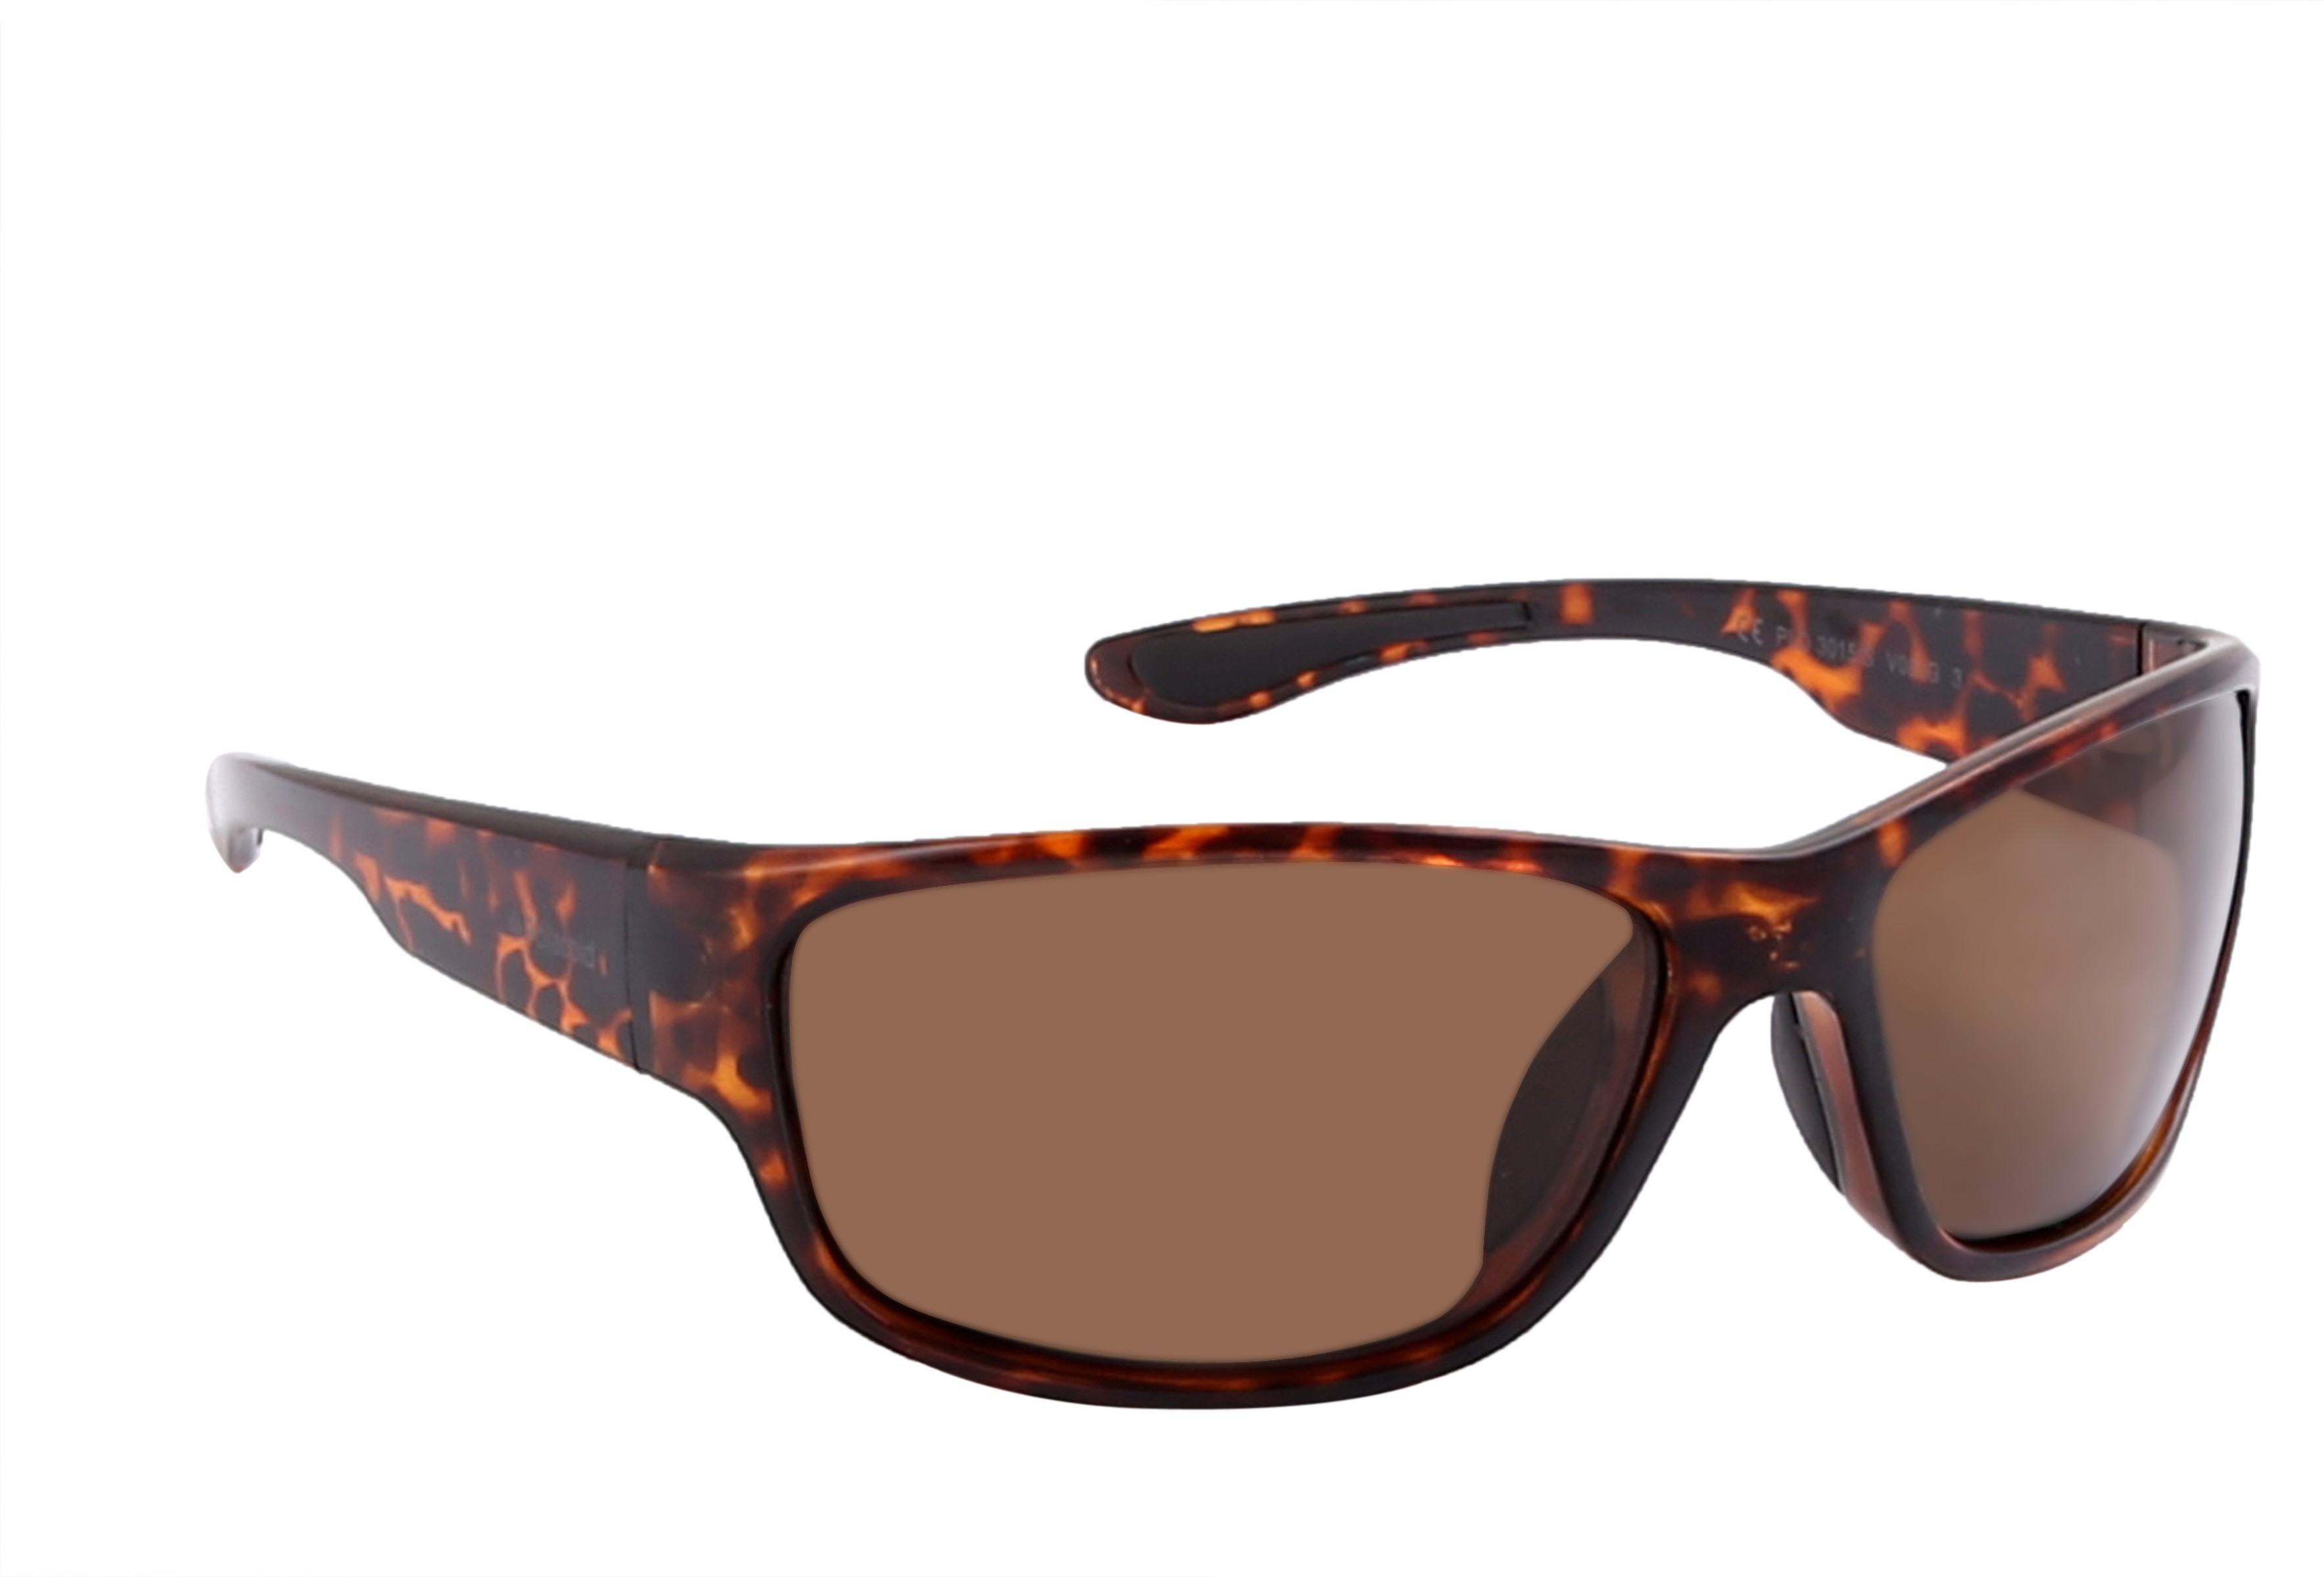 Deals - Delhi - Polaroid & more <br> Sports Womens Sunglasses<br> Category - sunglasses<br> Business - Flipkart.com